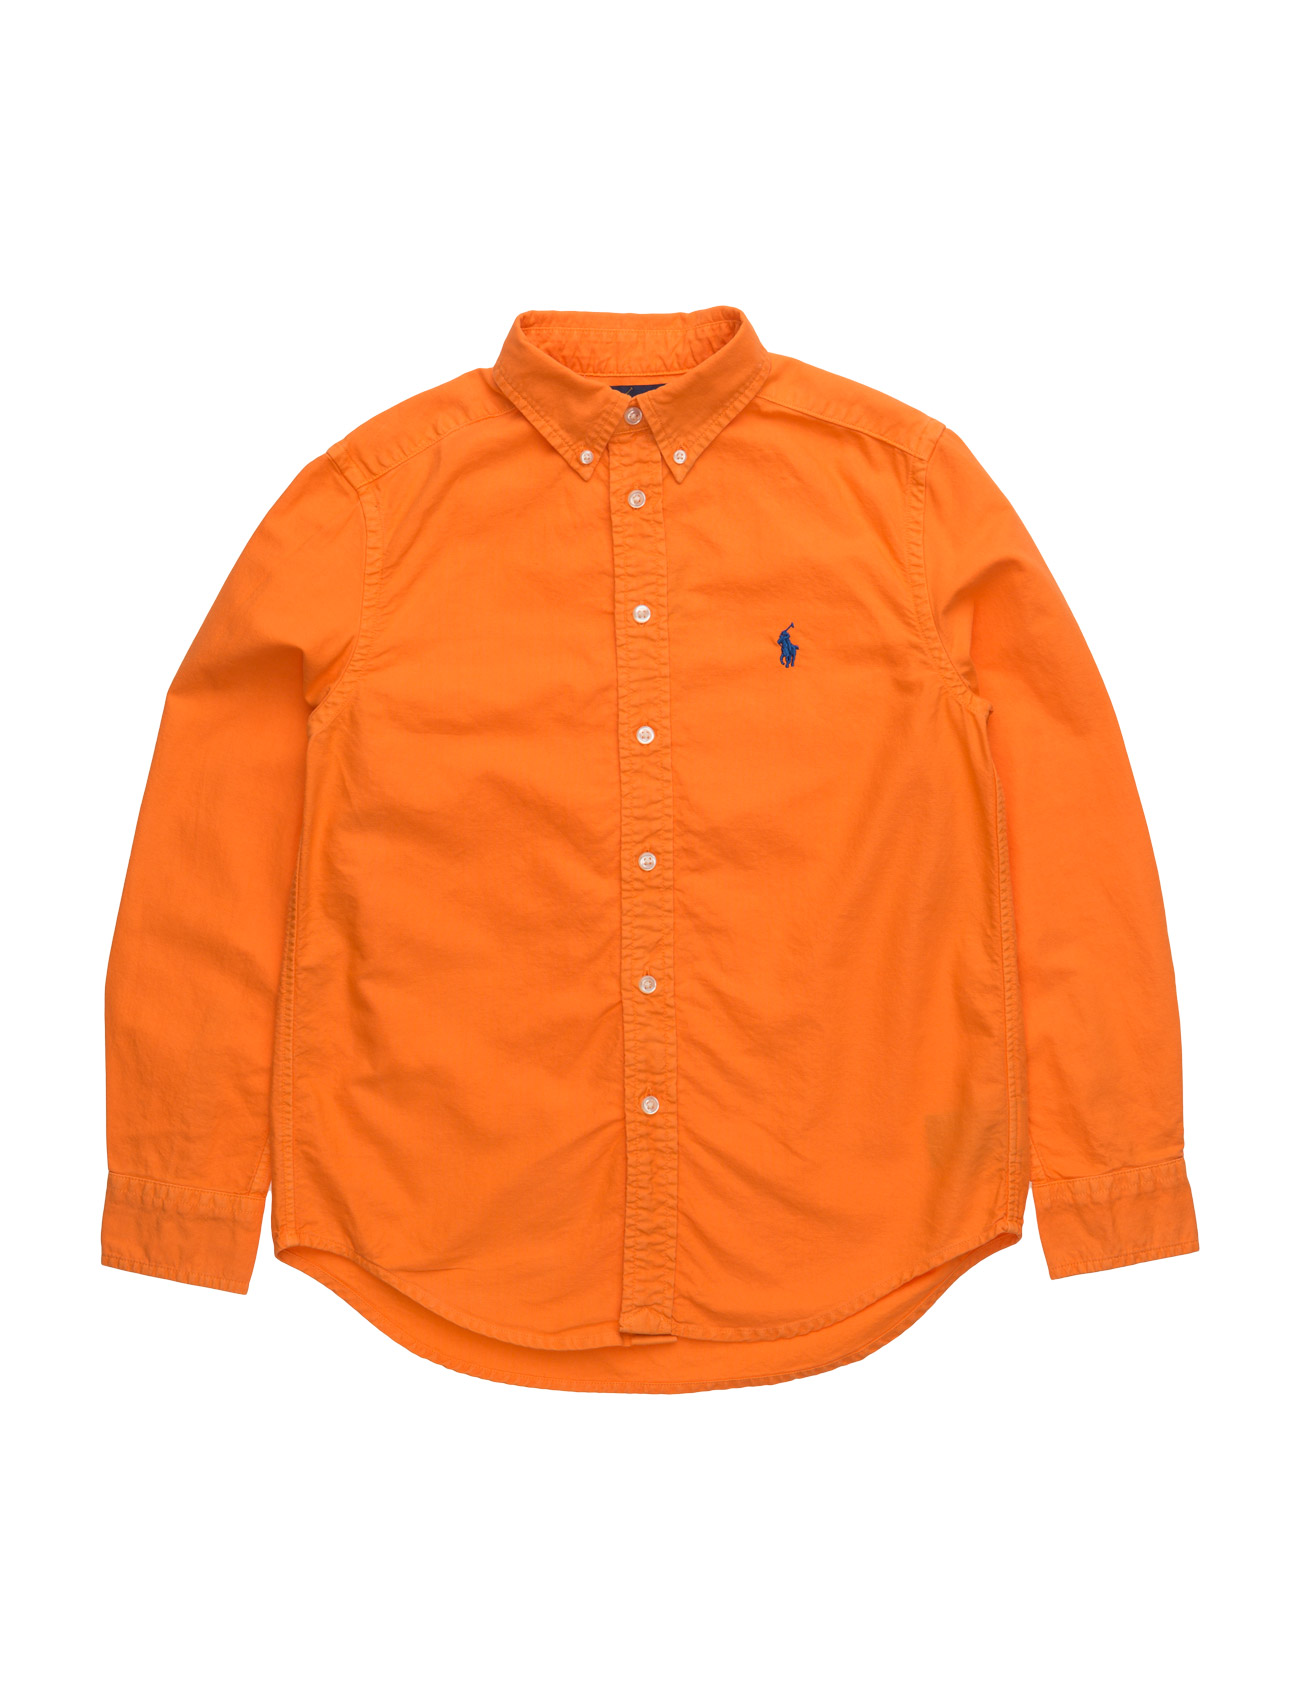 Ls bd tops shirt bright signal o ralph for Ralph lauren kids